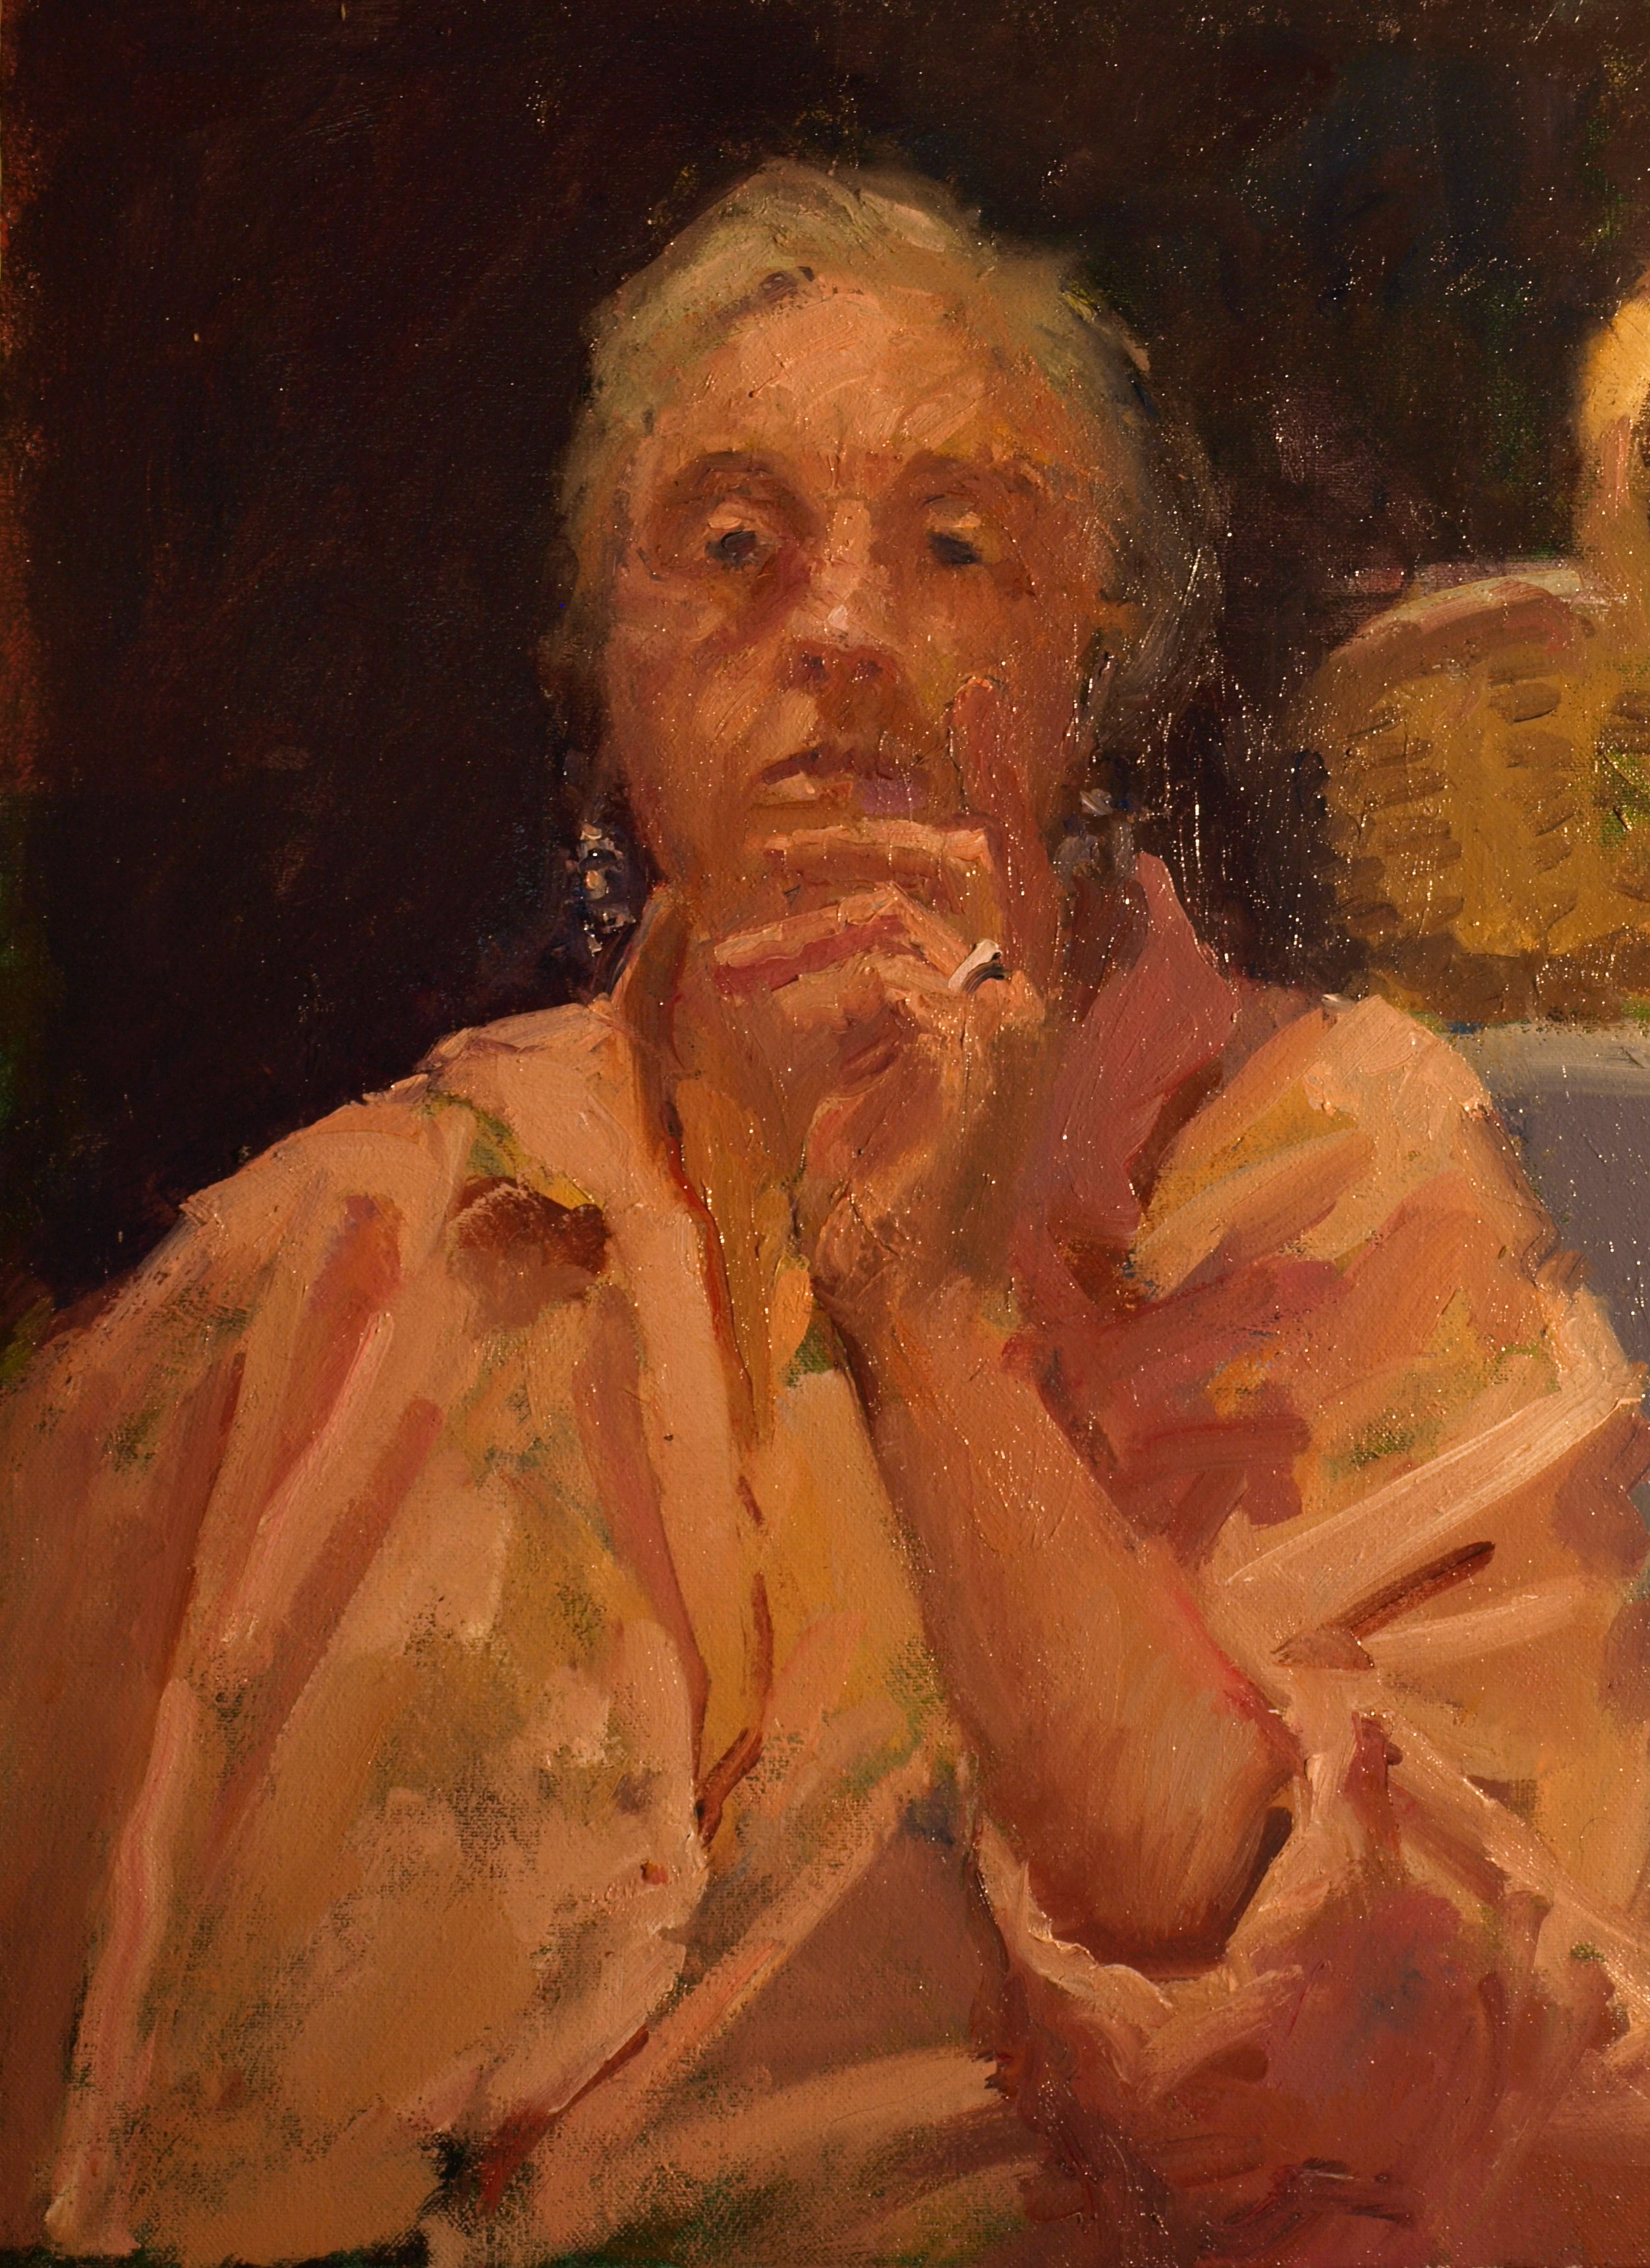 Pink Shirt, Oil on Canvas, 18 x 14 Inches, by Susan Grisell, $500